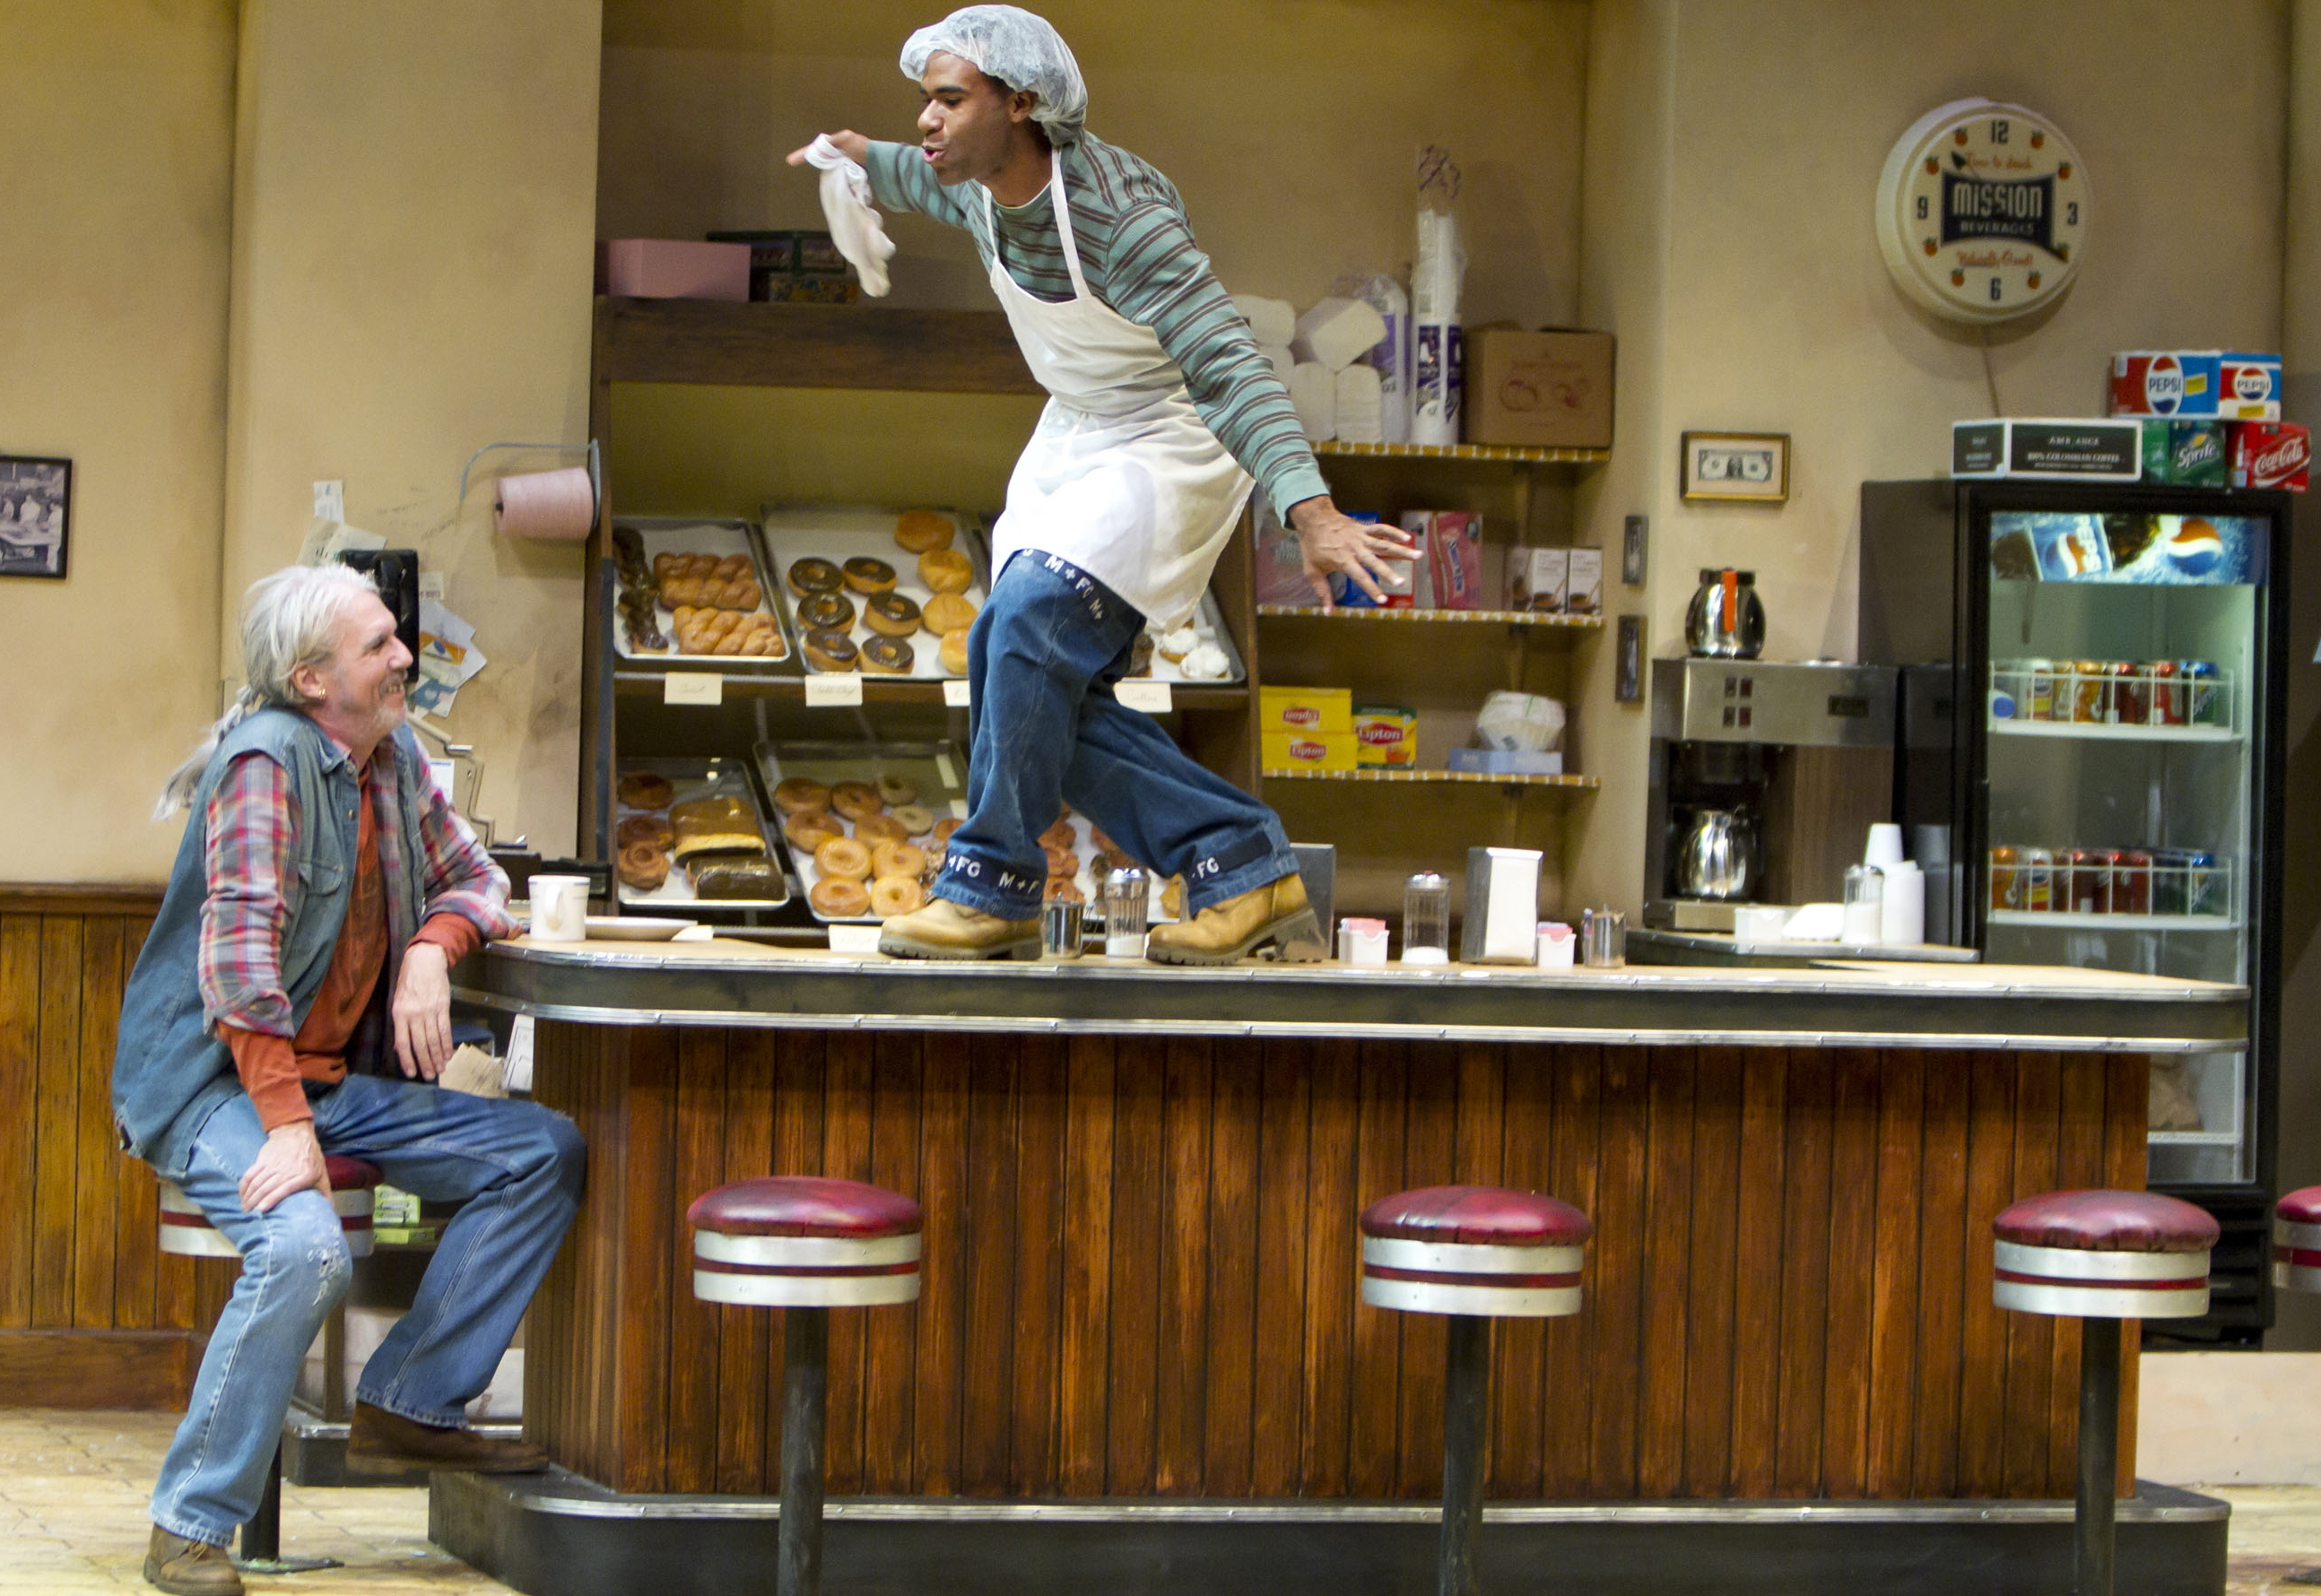 Superior Donuts, Mountain View, CA